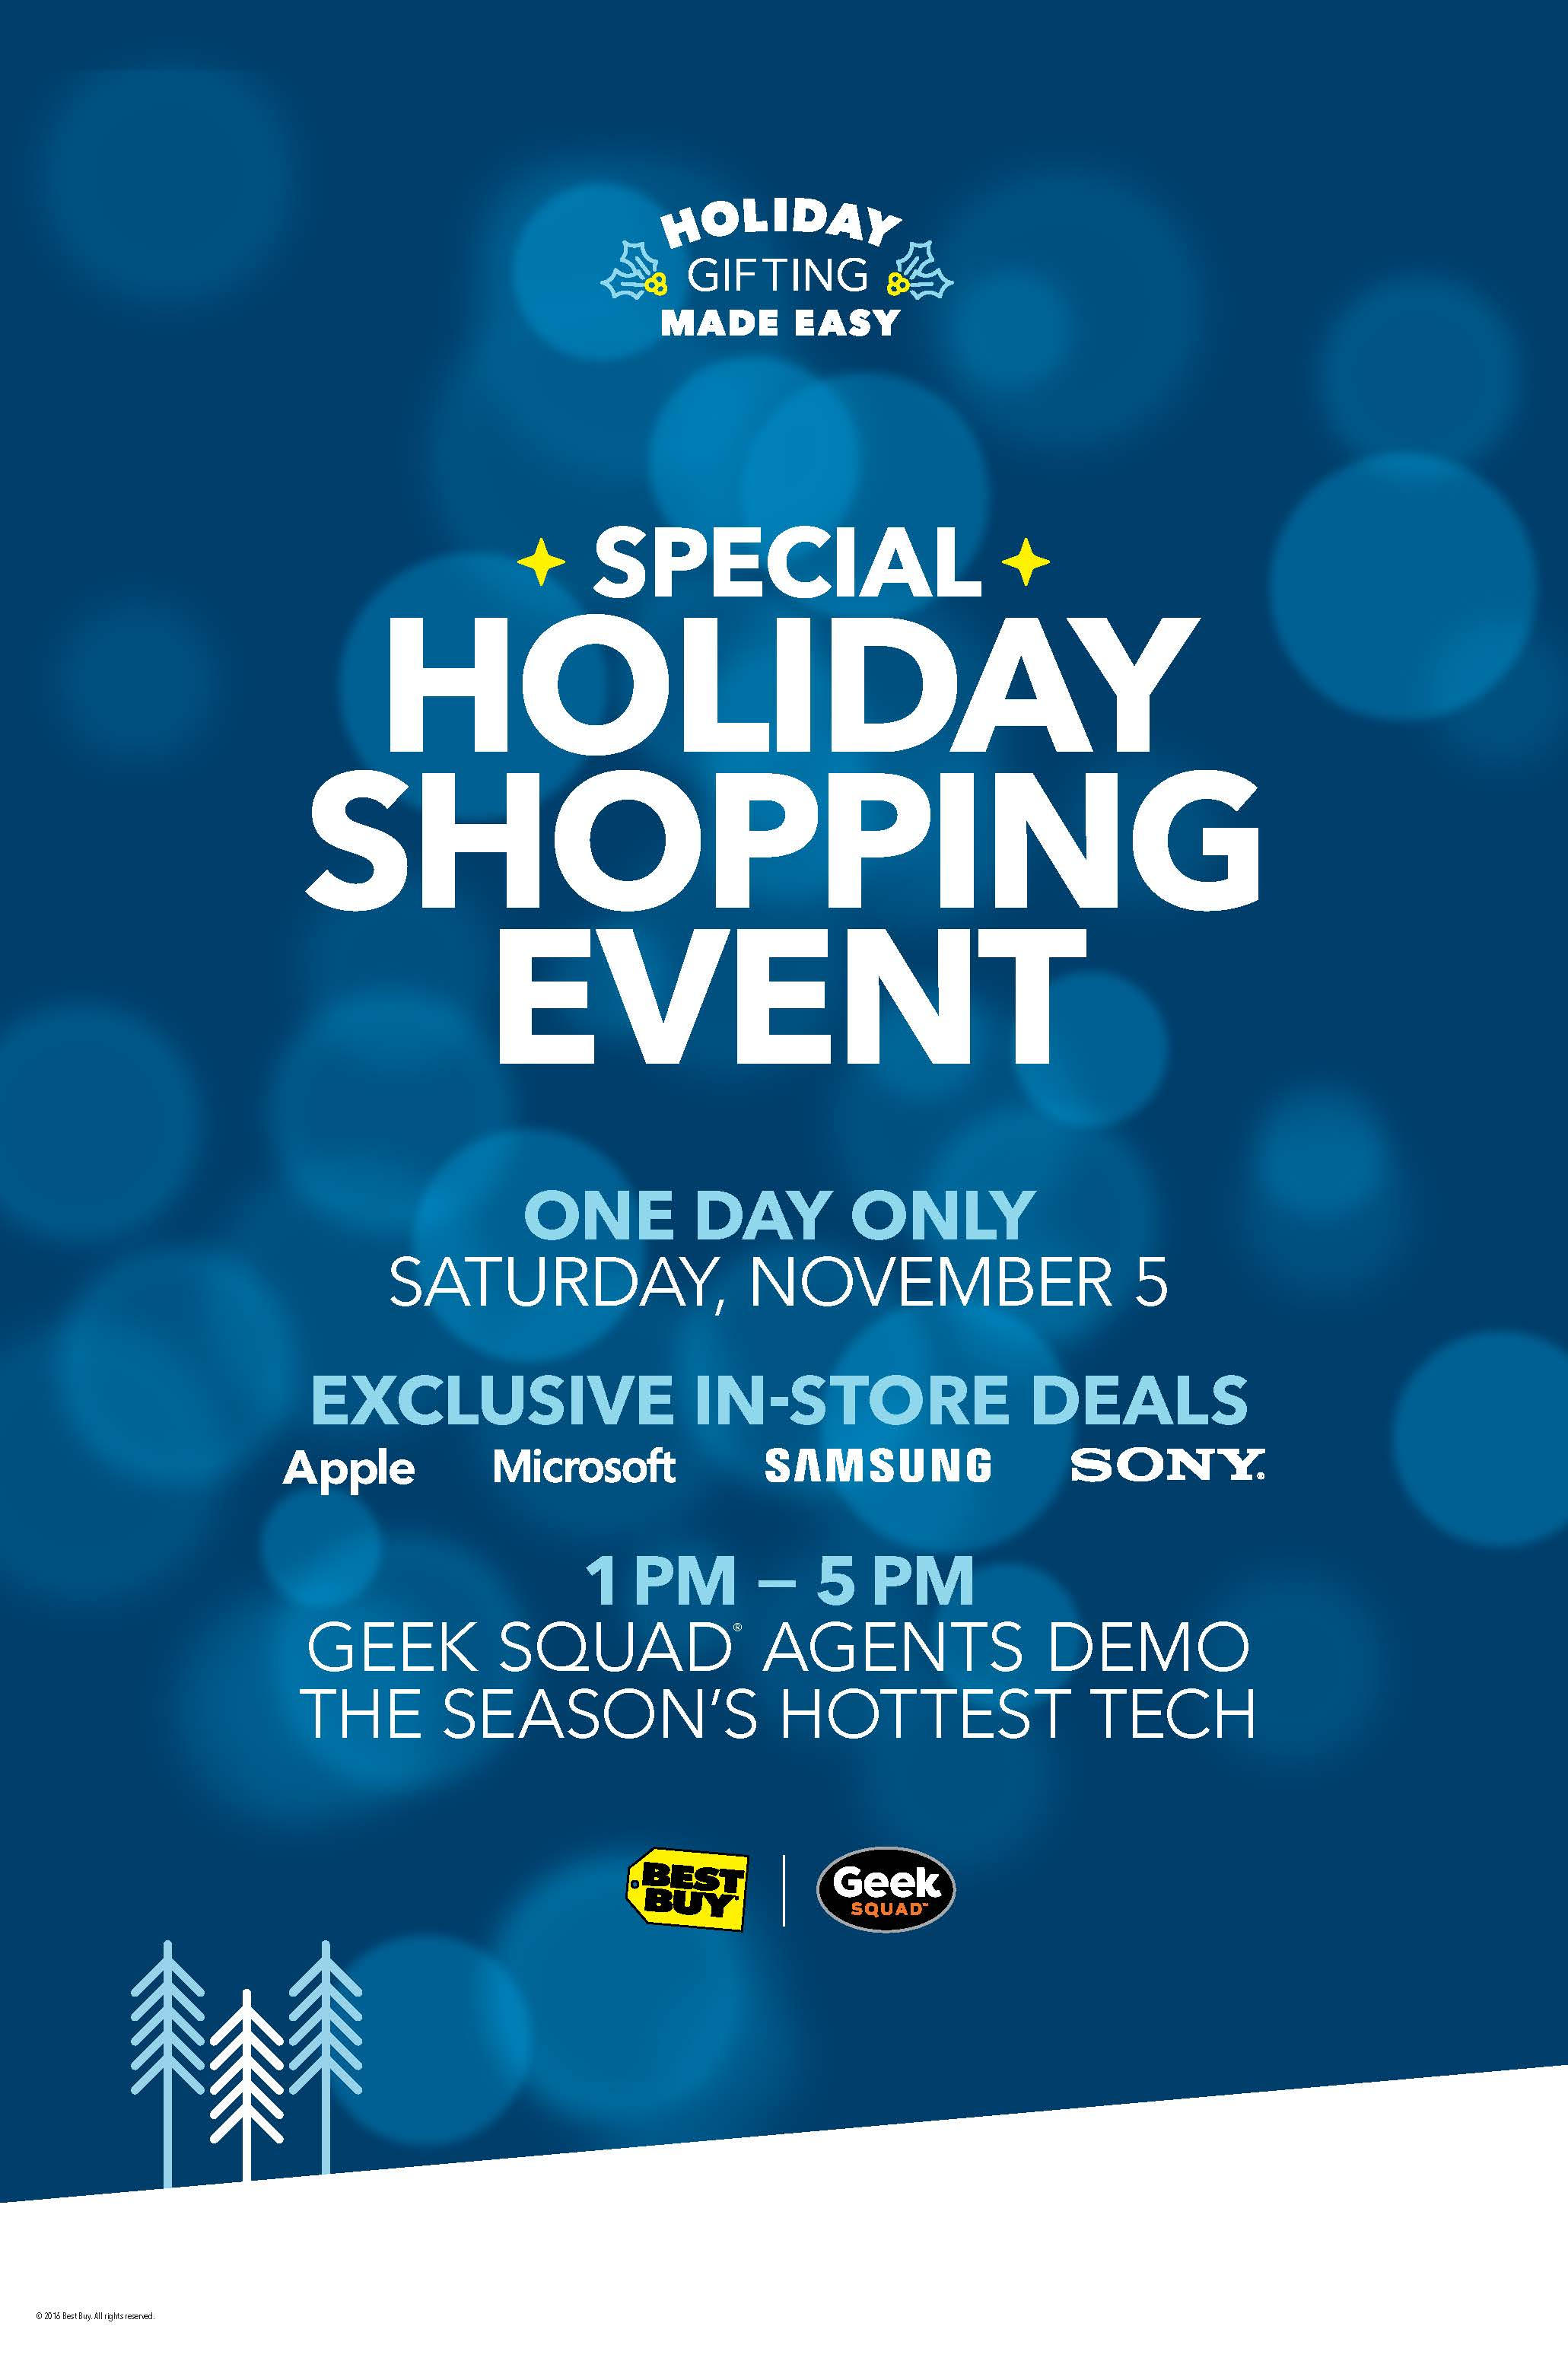 Take The Stress Out Of Shopping With The BestBuy Holiday Shopping Event